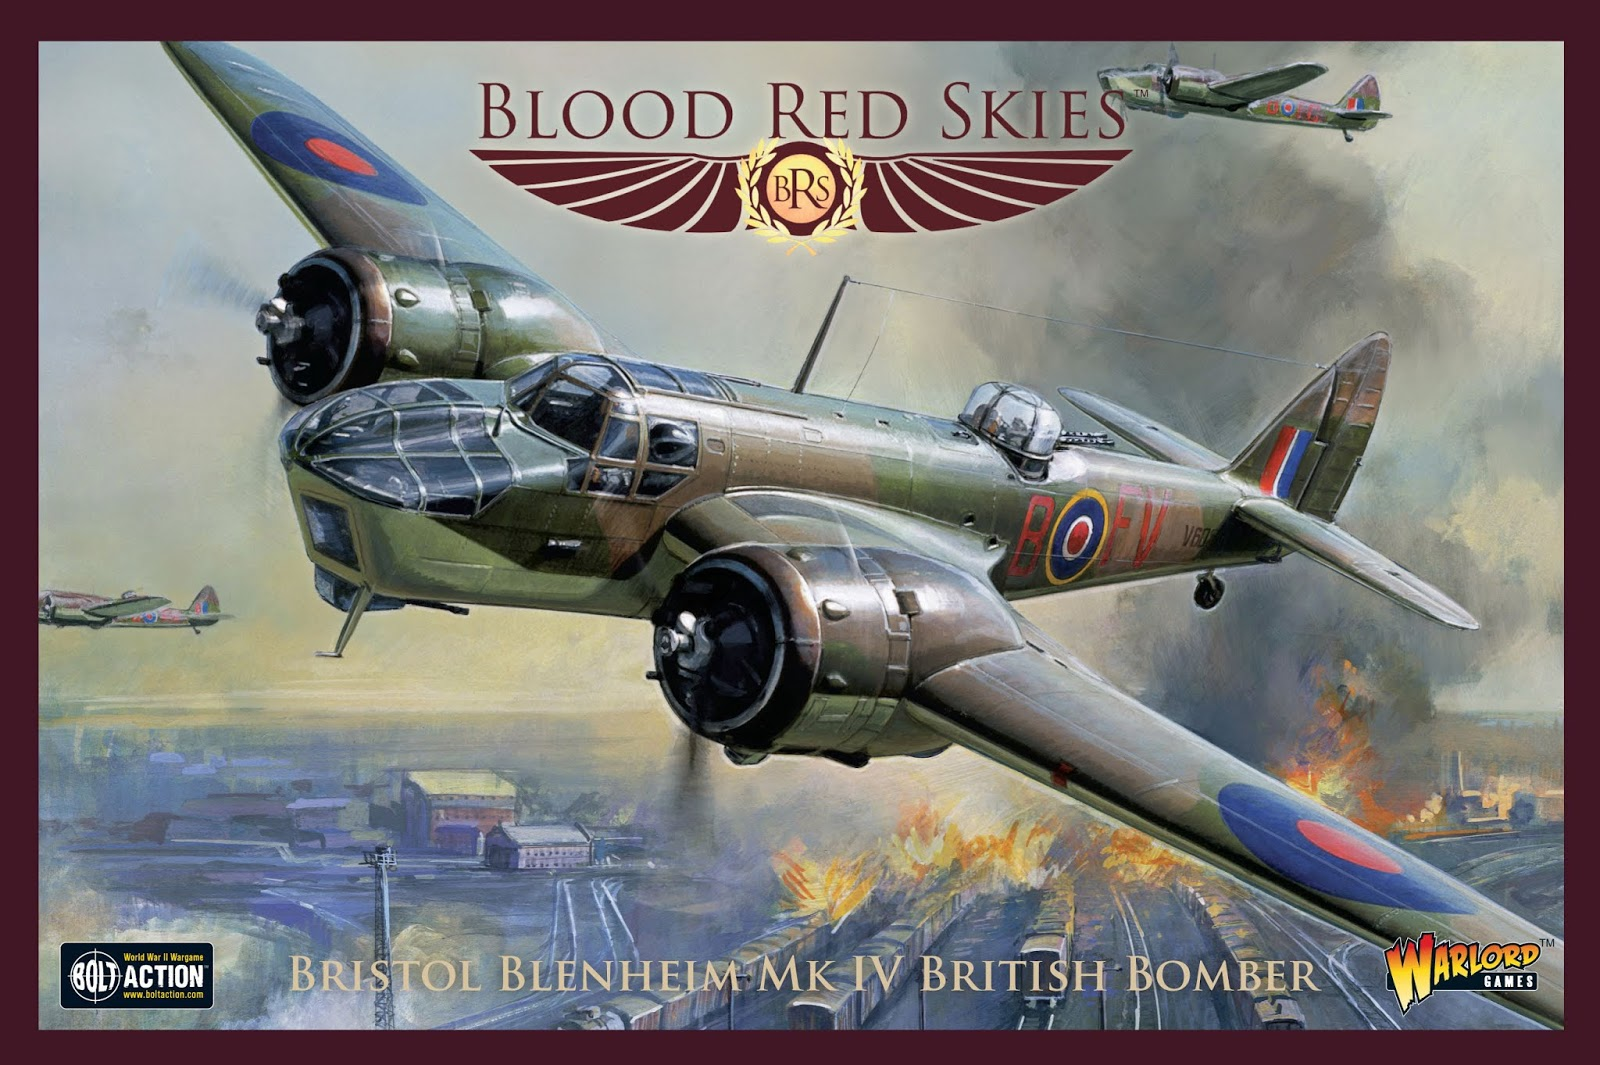 Bristol Blenheim Mk IV British Bomber - Blood Red Skies